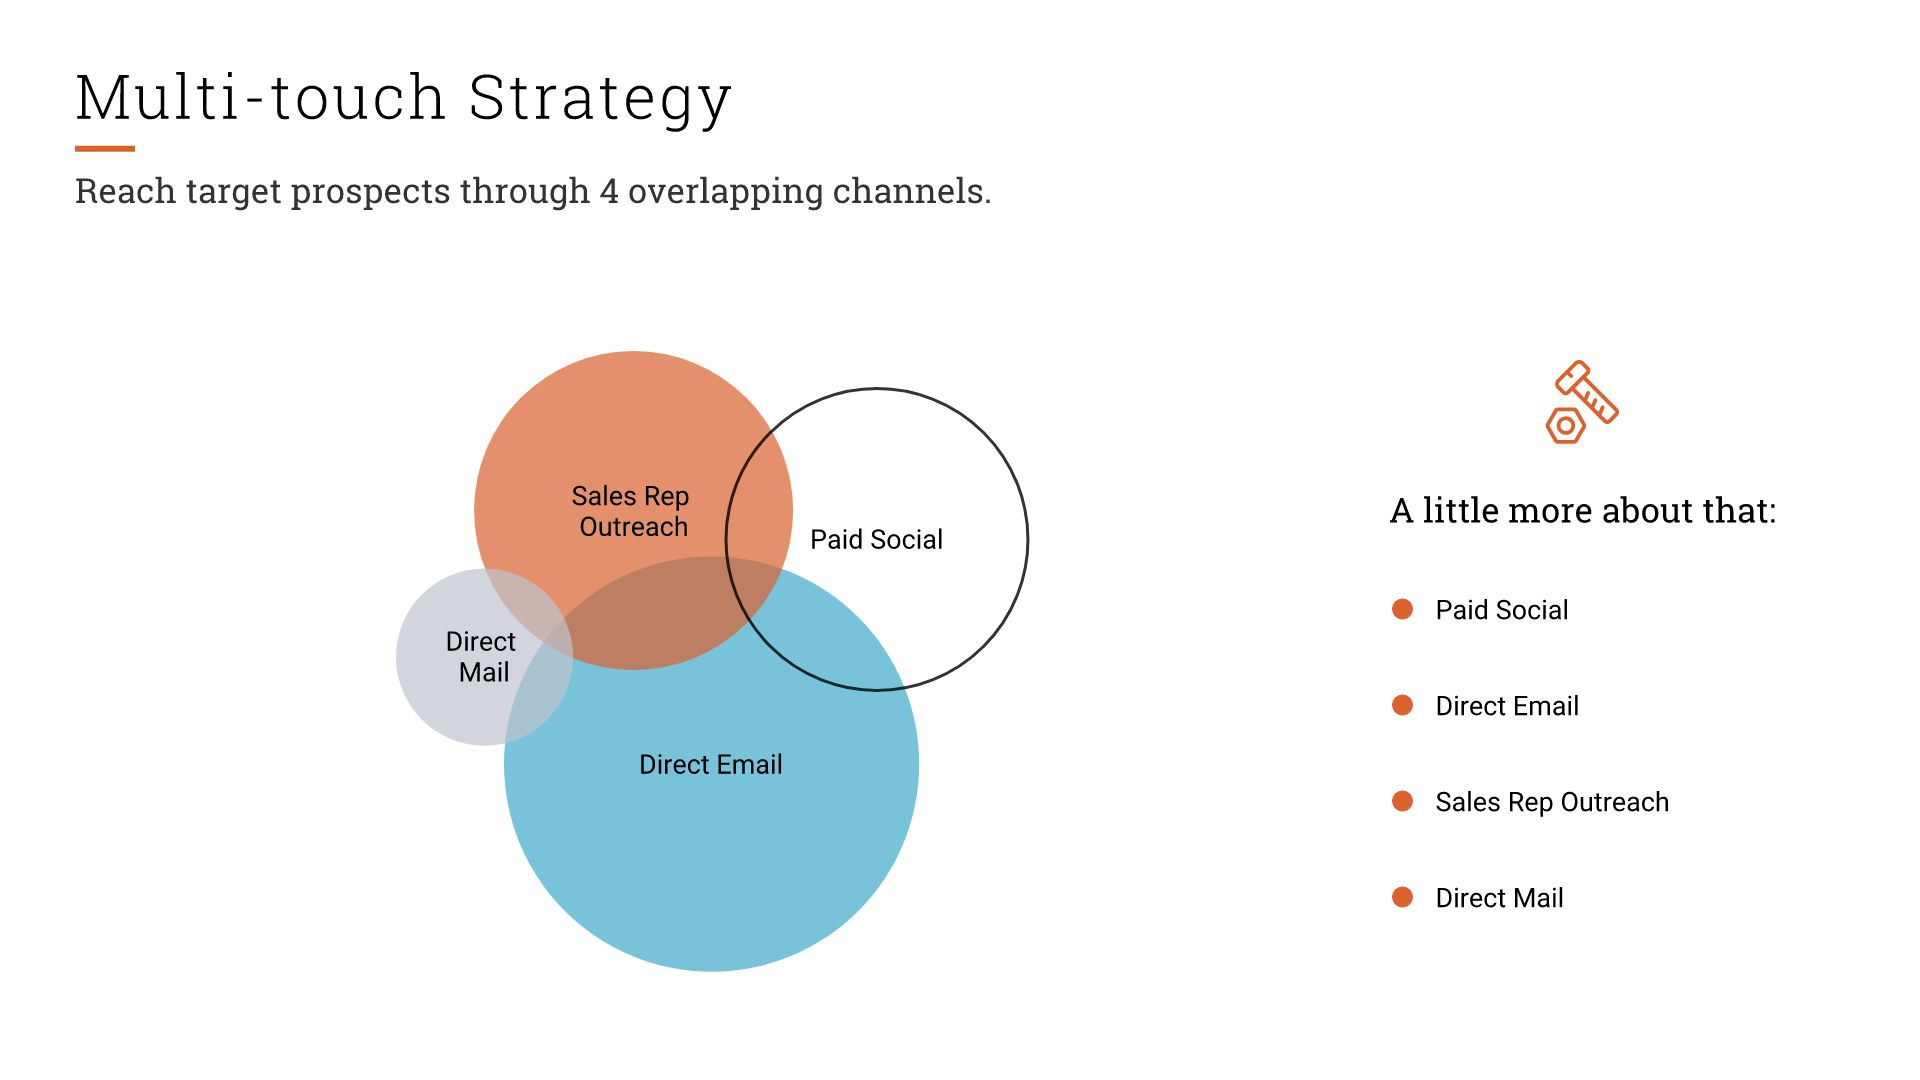 MULTI-TOUCH STRATEGY